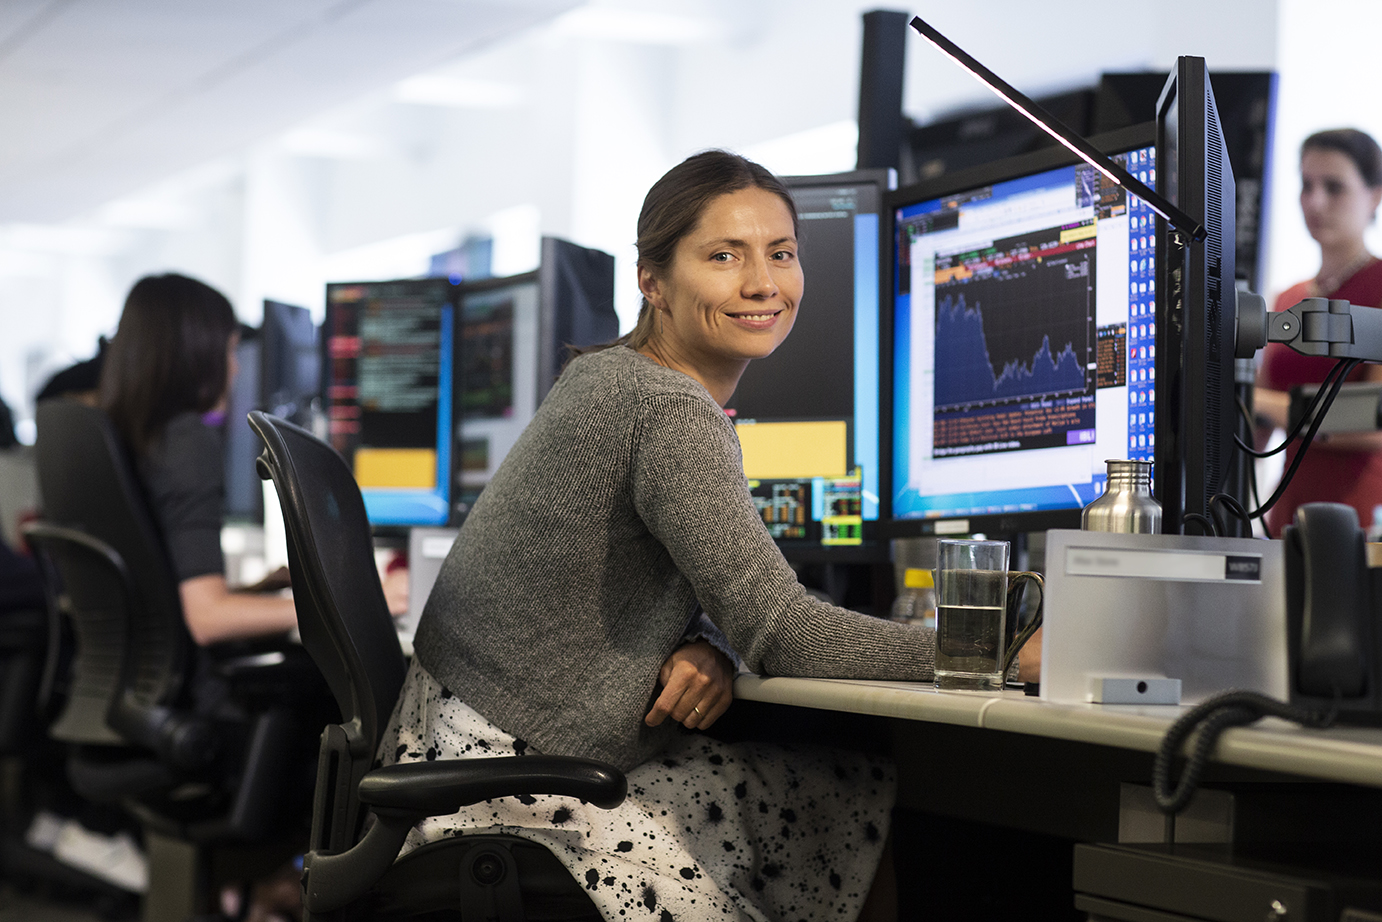 Woman sitting at her workstation smiling at the camera on the trading floor.